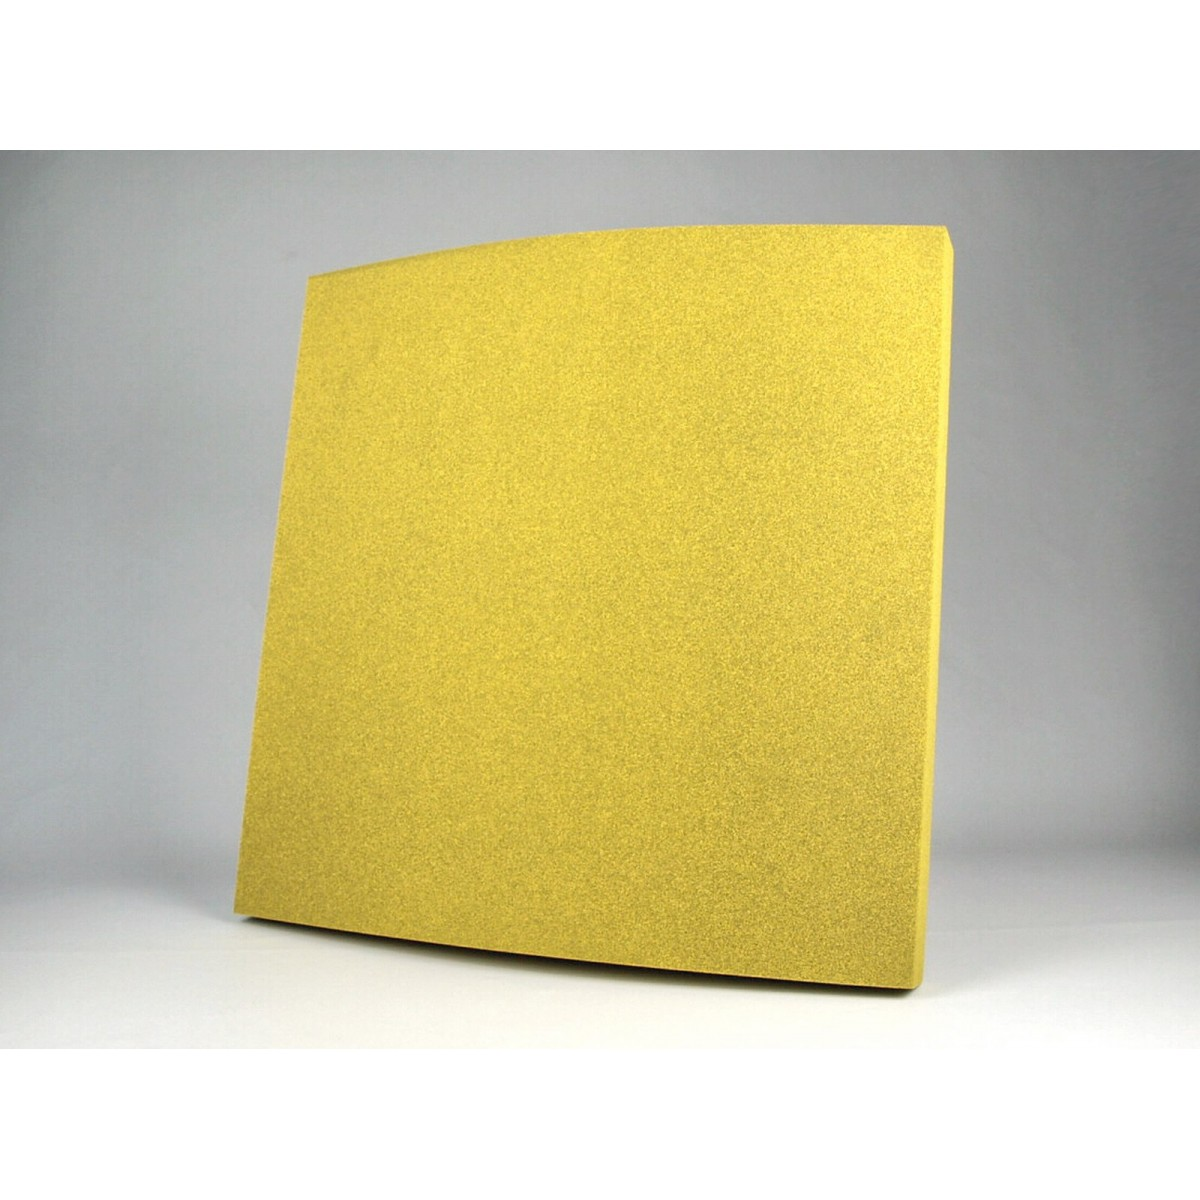 eliacoustic pure yellow